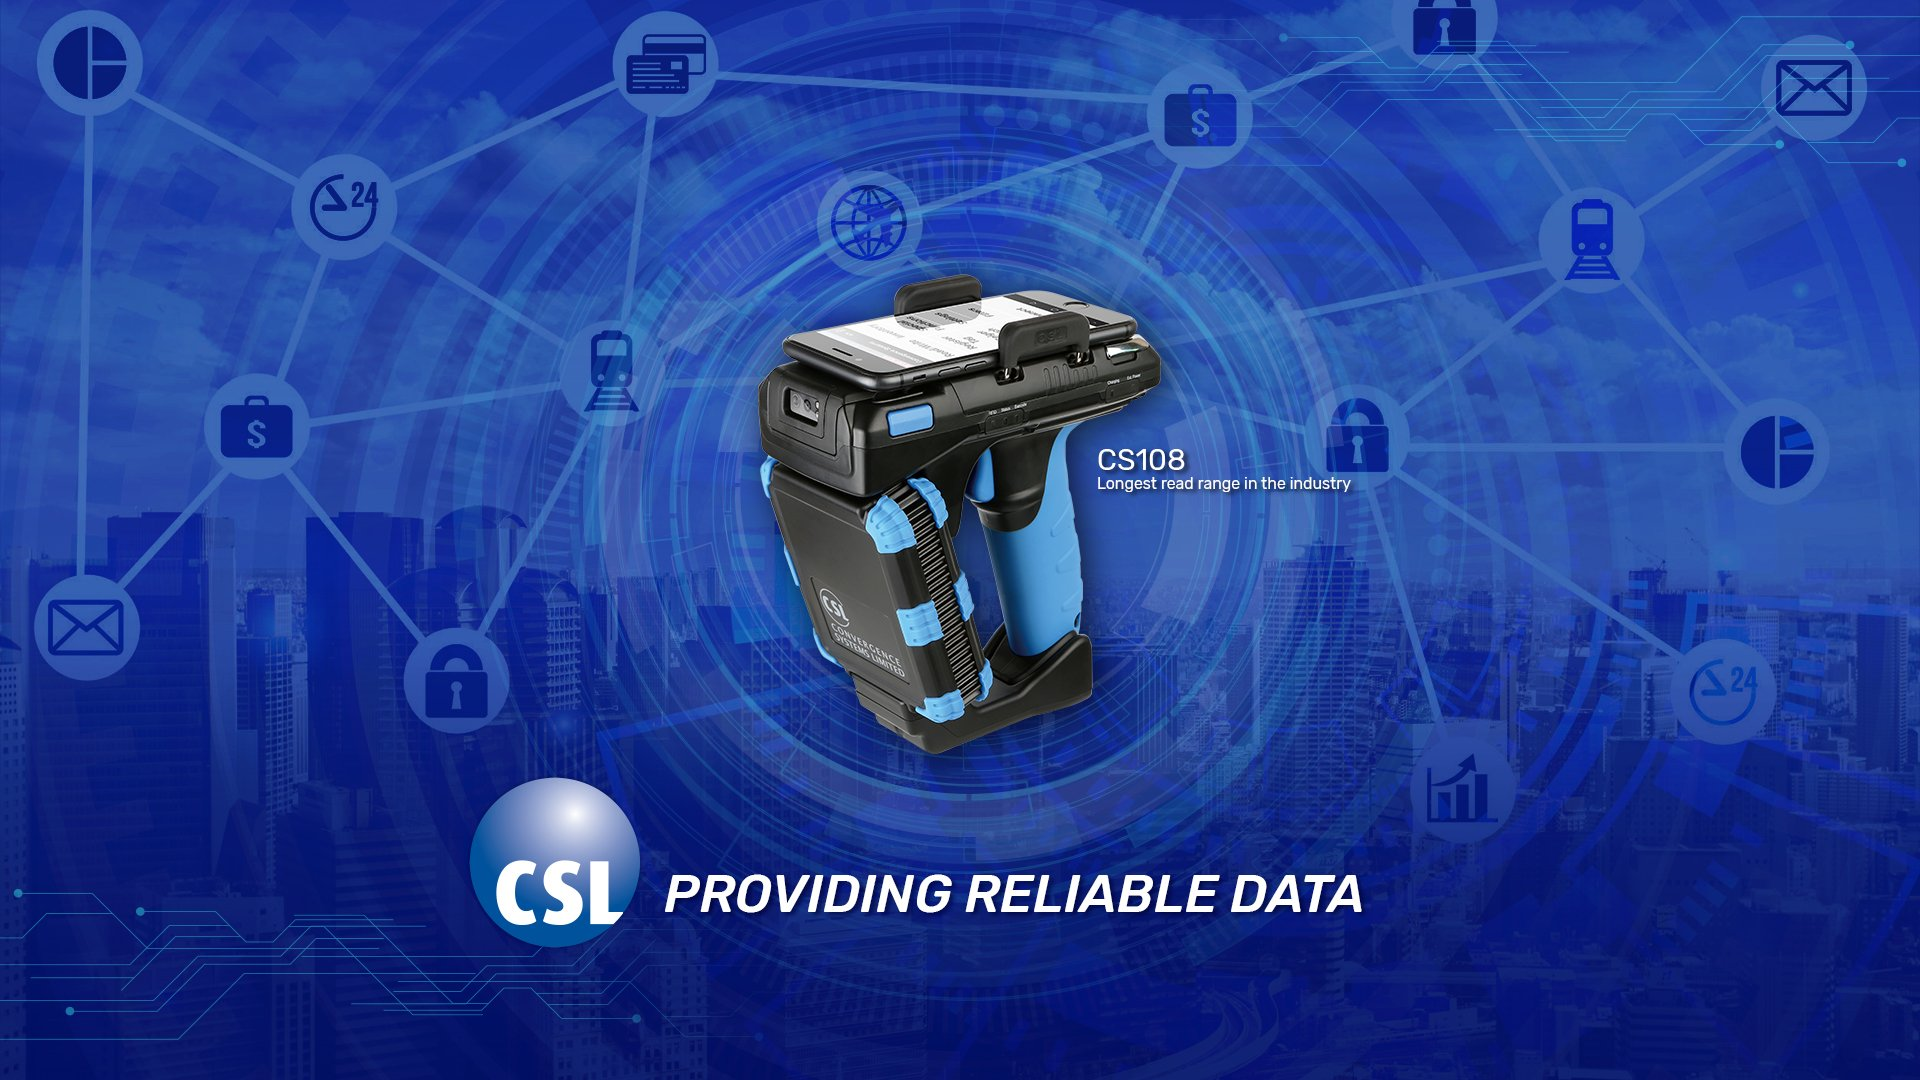 CSL Launches Affordable, Reliable UHF RFID Handheld Sled with Longest Read Range in Industry